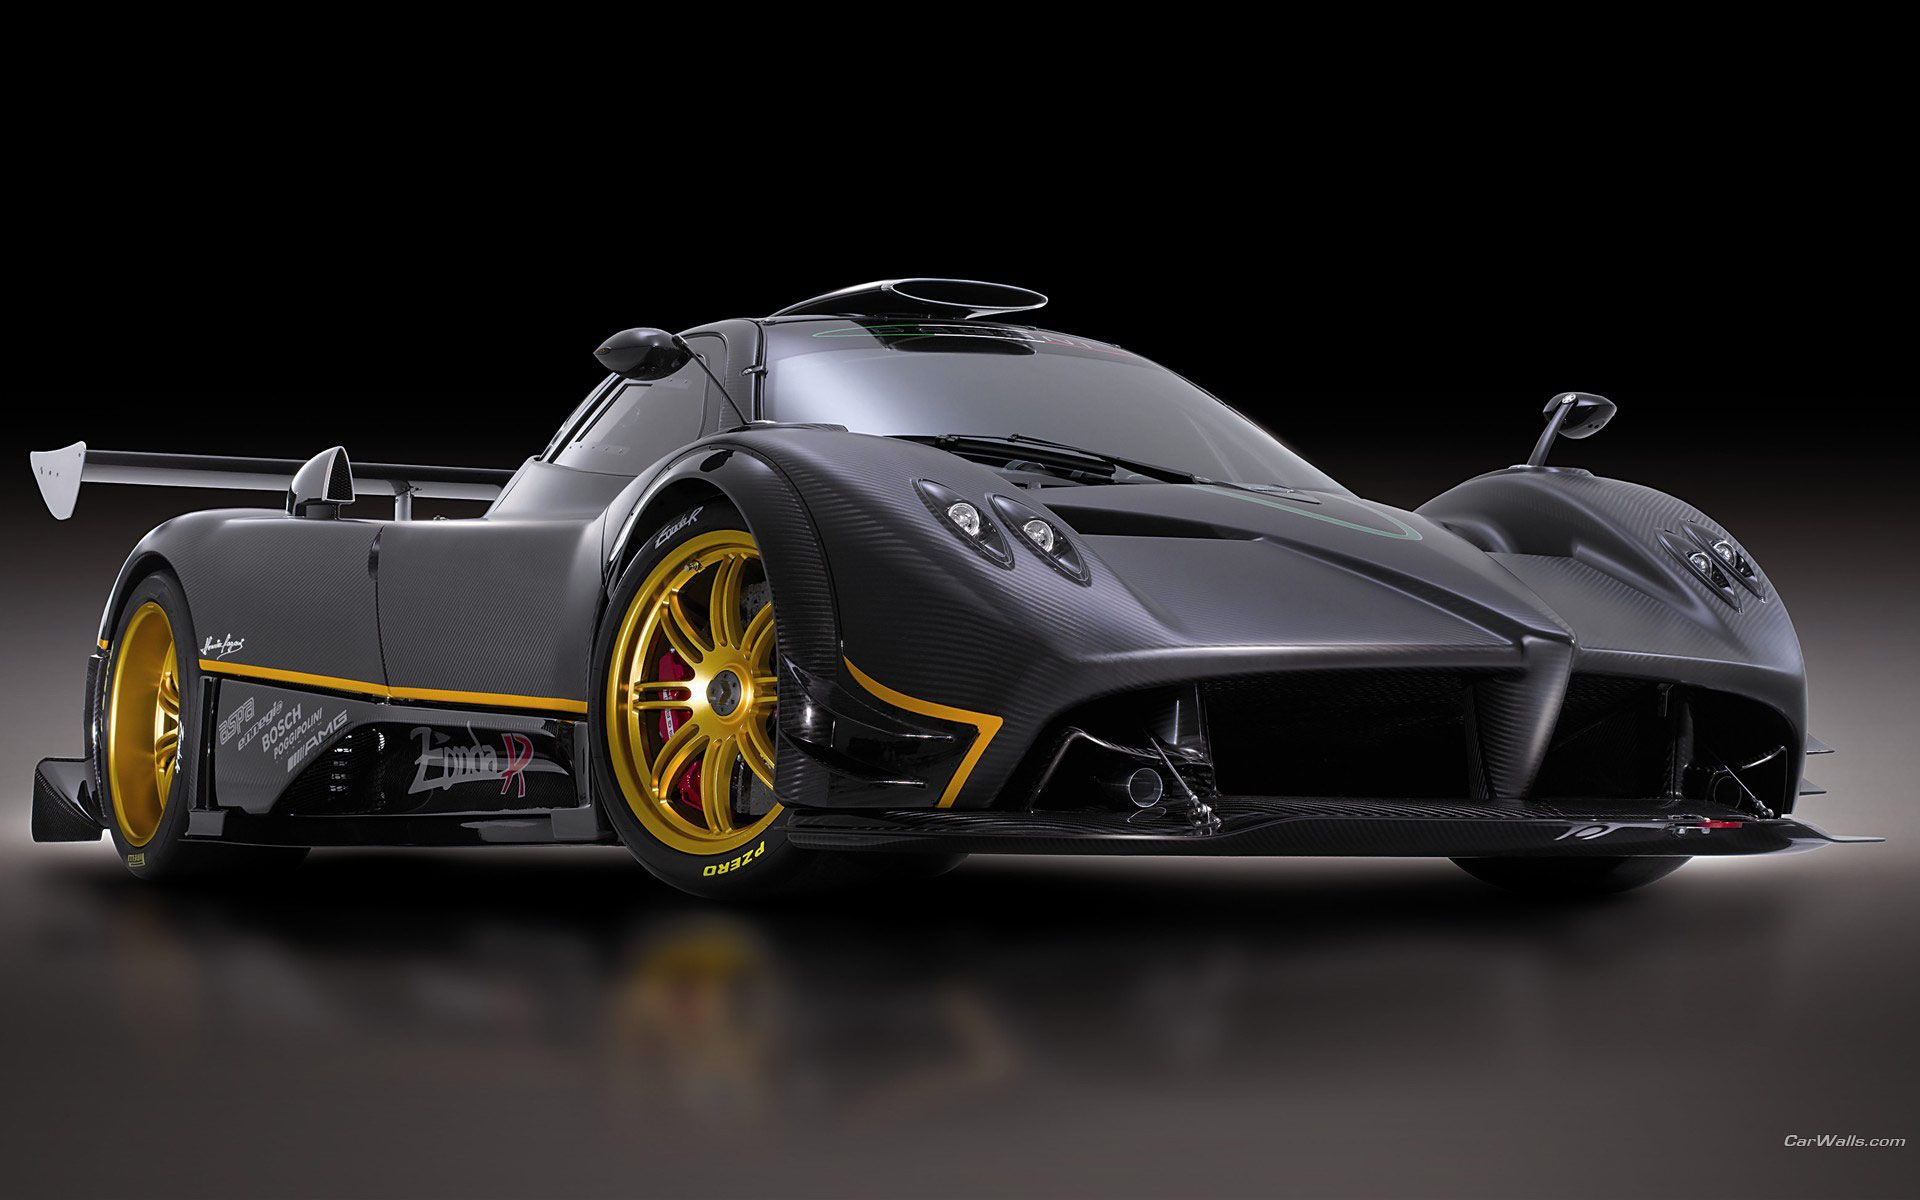 The Best Cars Ever | Vehicle | Pinterest | Pagani zonda, Cars and ...